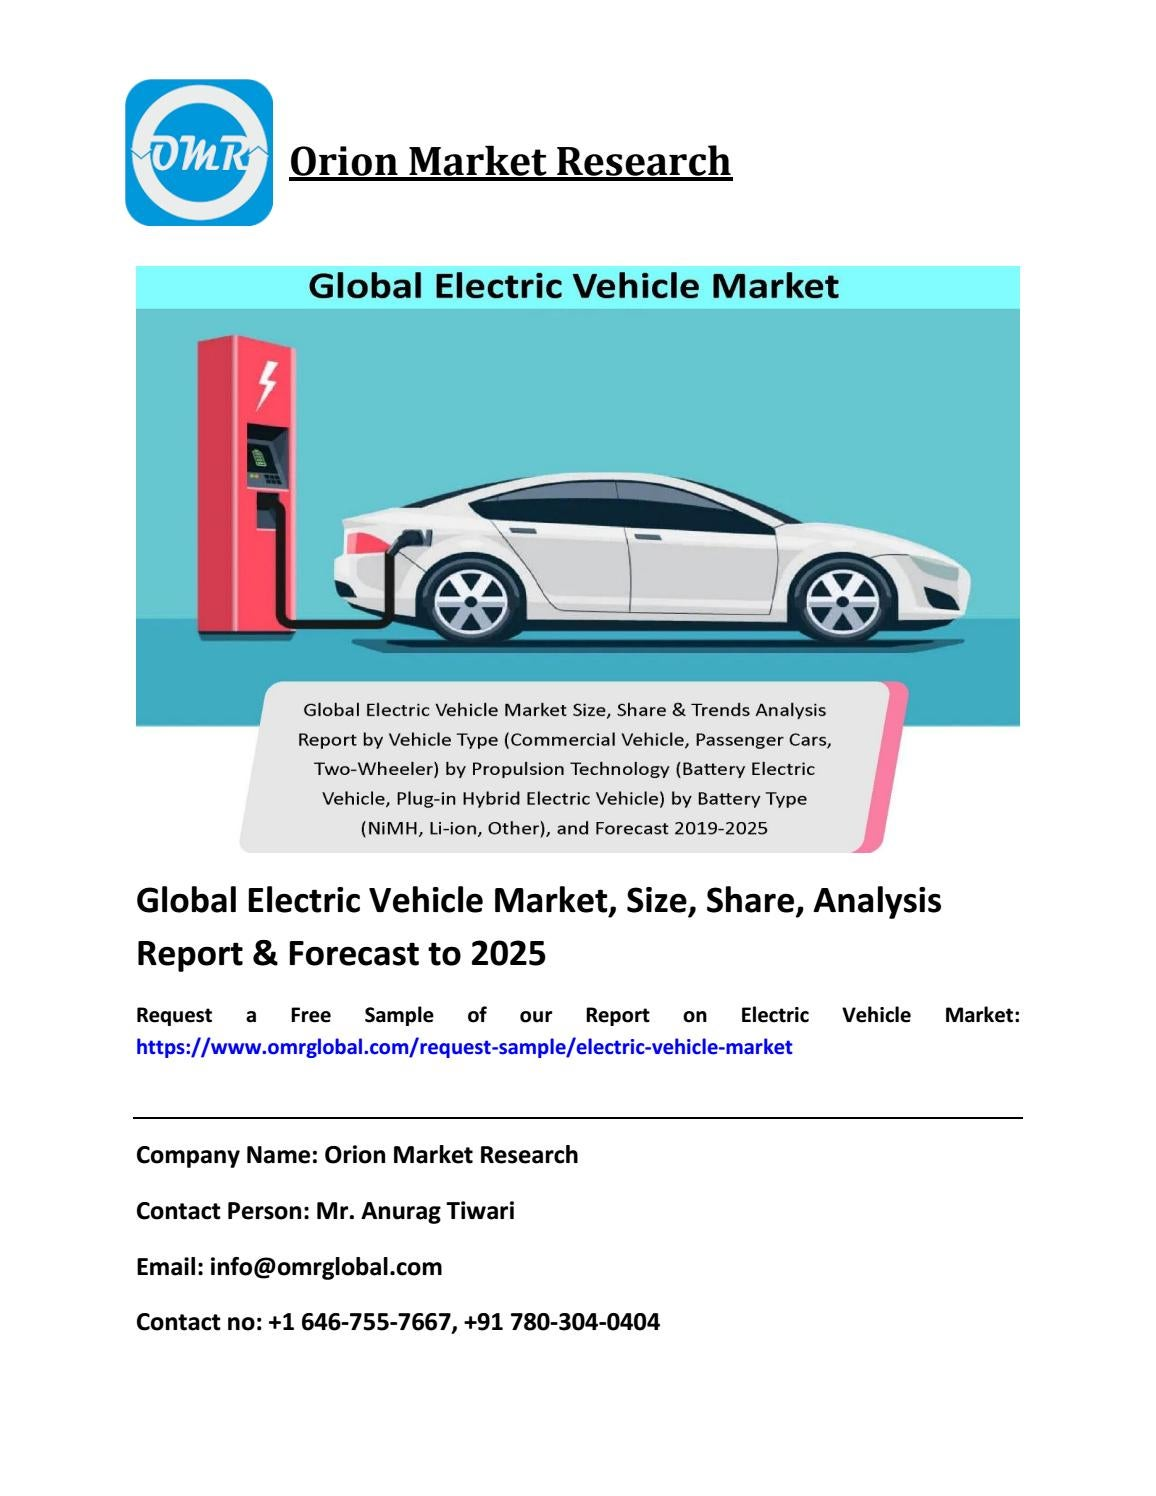 Global Electric Vehicle Market Size Share Growth Forecast To 2025 By Omrglobal7 Issuu